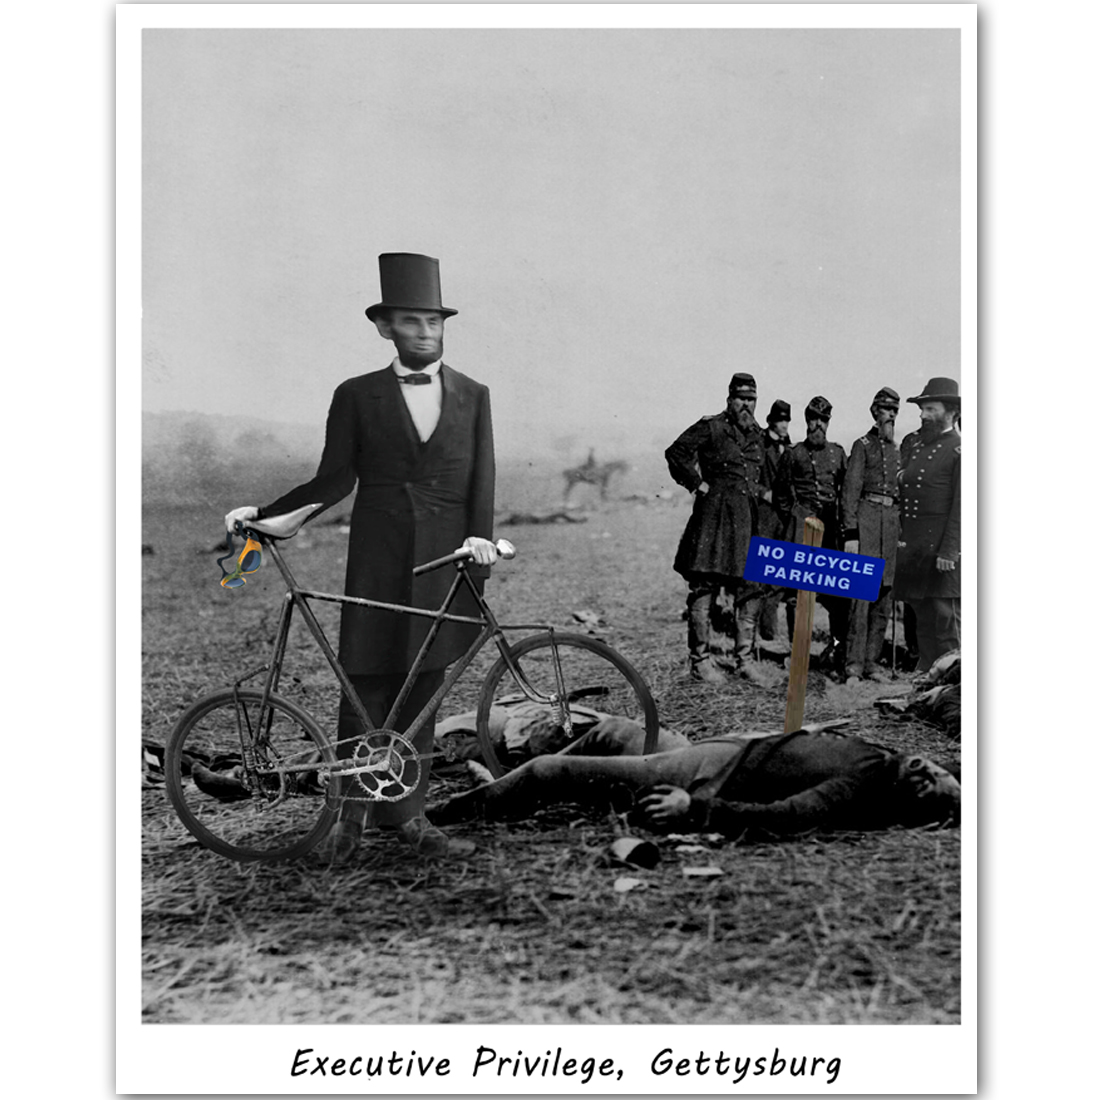 Keat Executive Privilege: Executive Privilege, Gettysburg